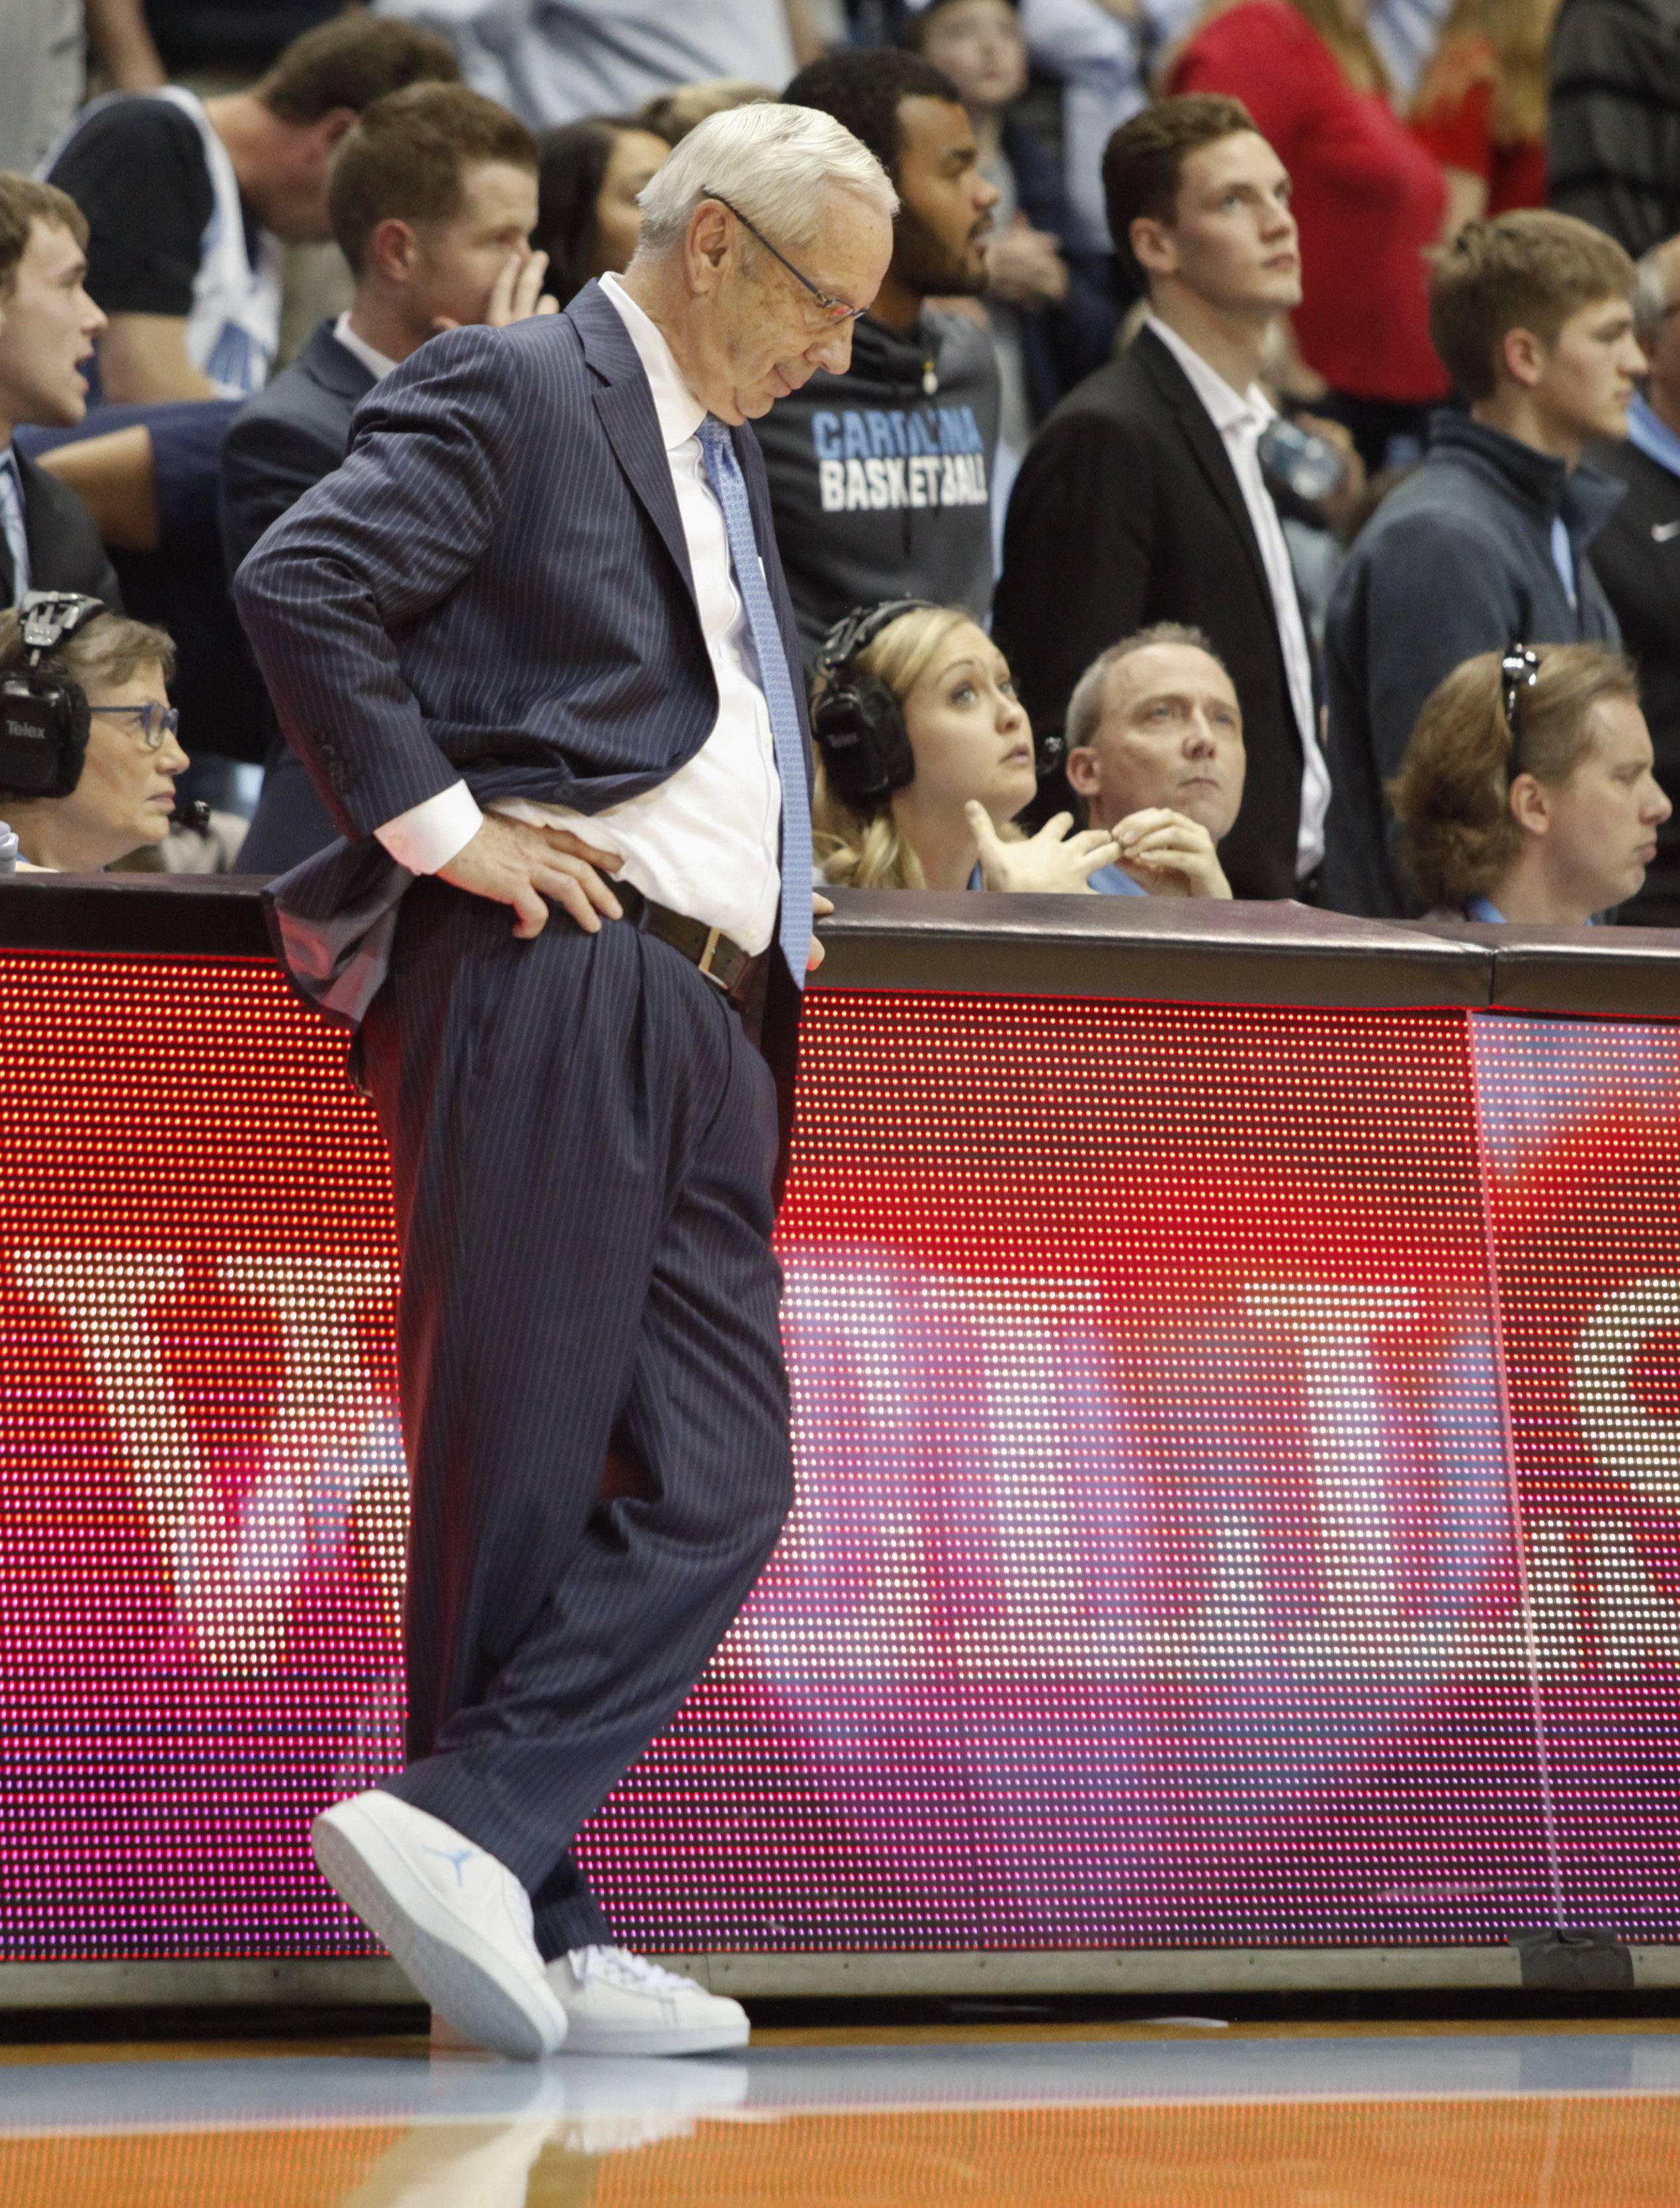 UNC head coach Roy Williams wears Jordan brand sneakers at the game against NC State during Coaches vs. Cancer week.